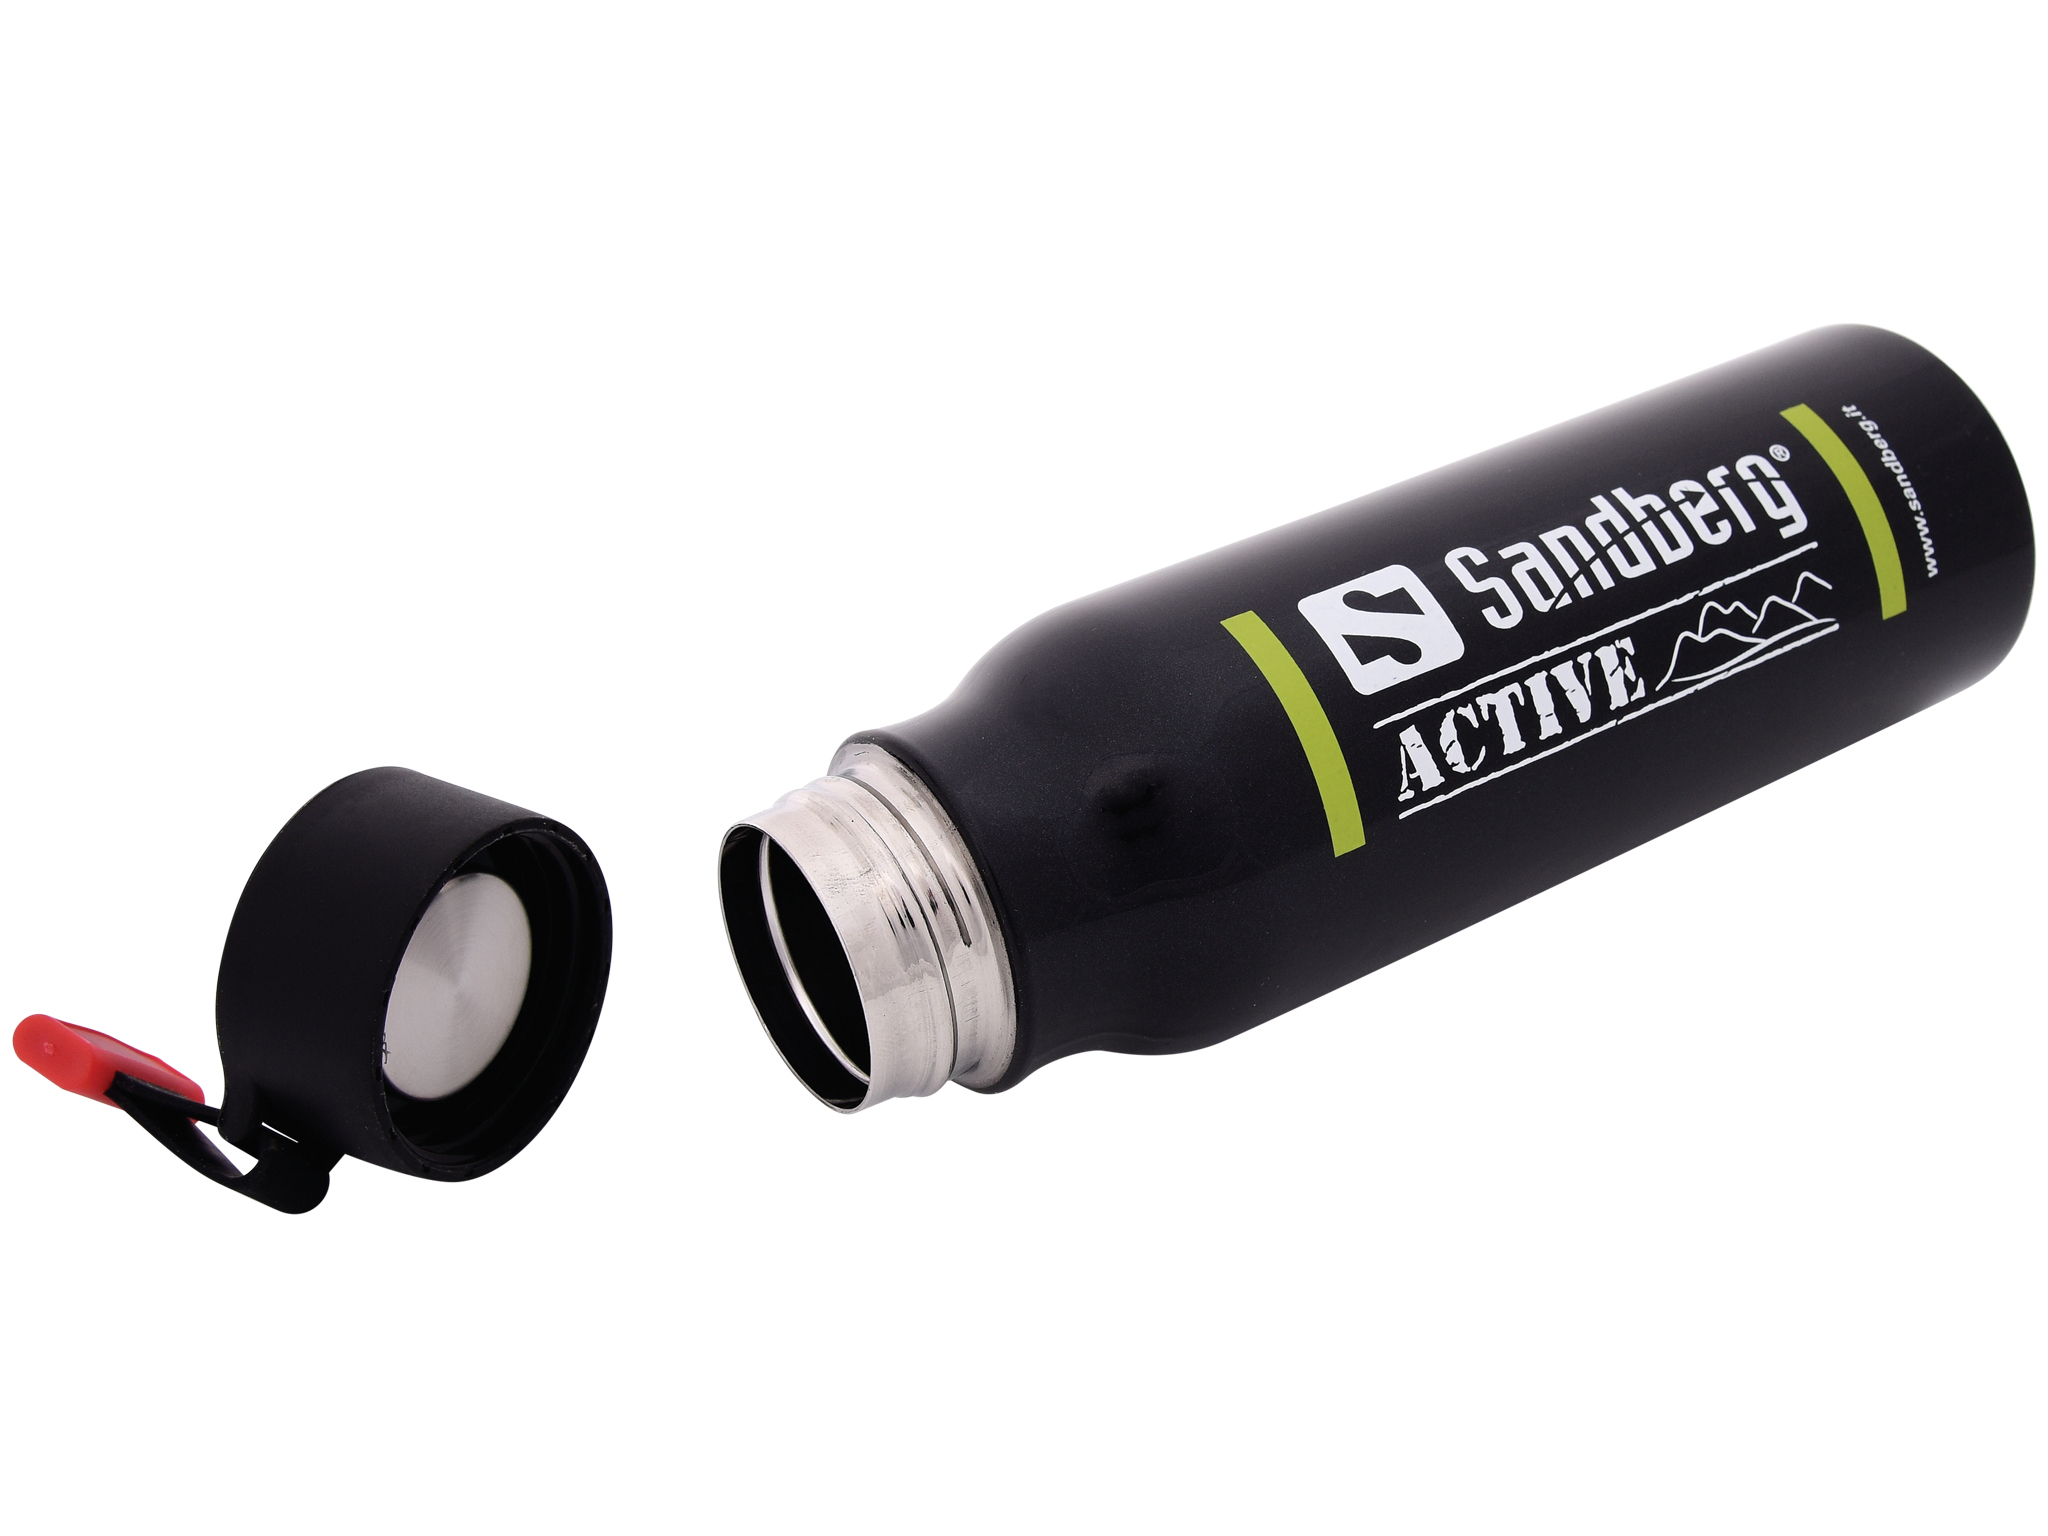 Active Thermos Drinking Bottle